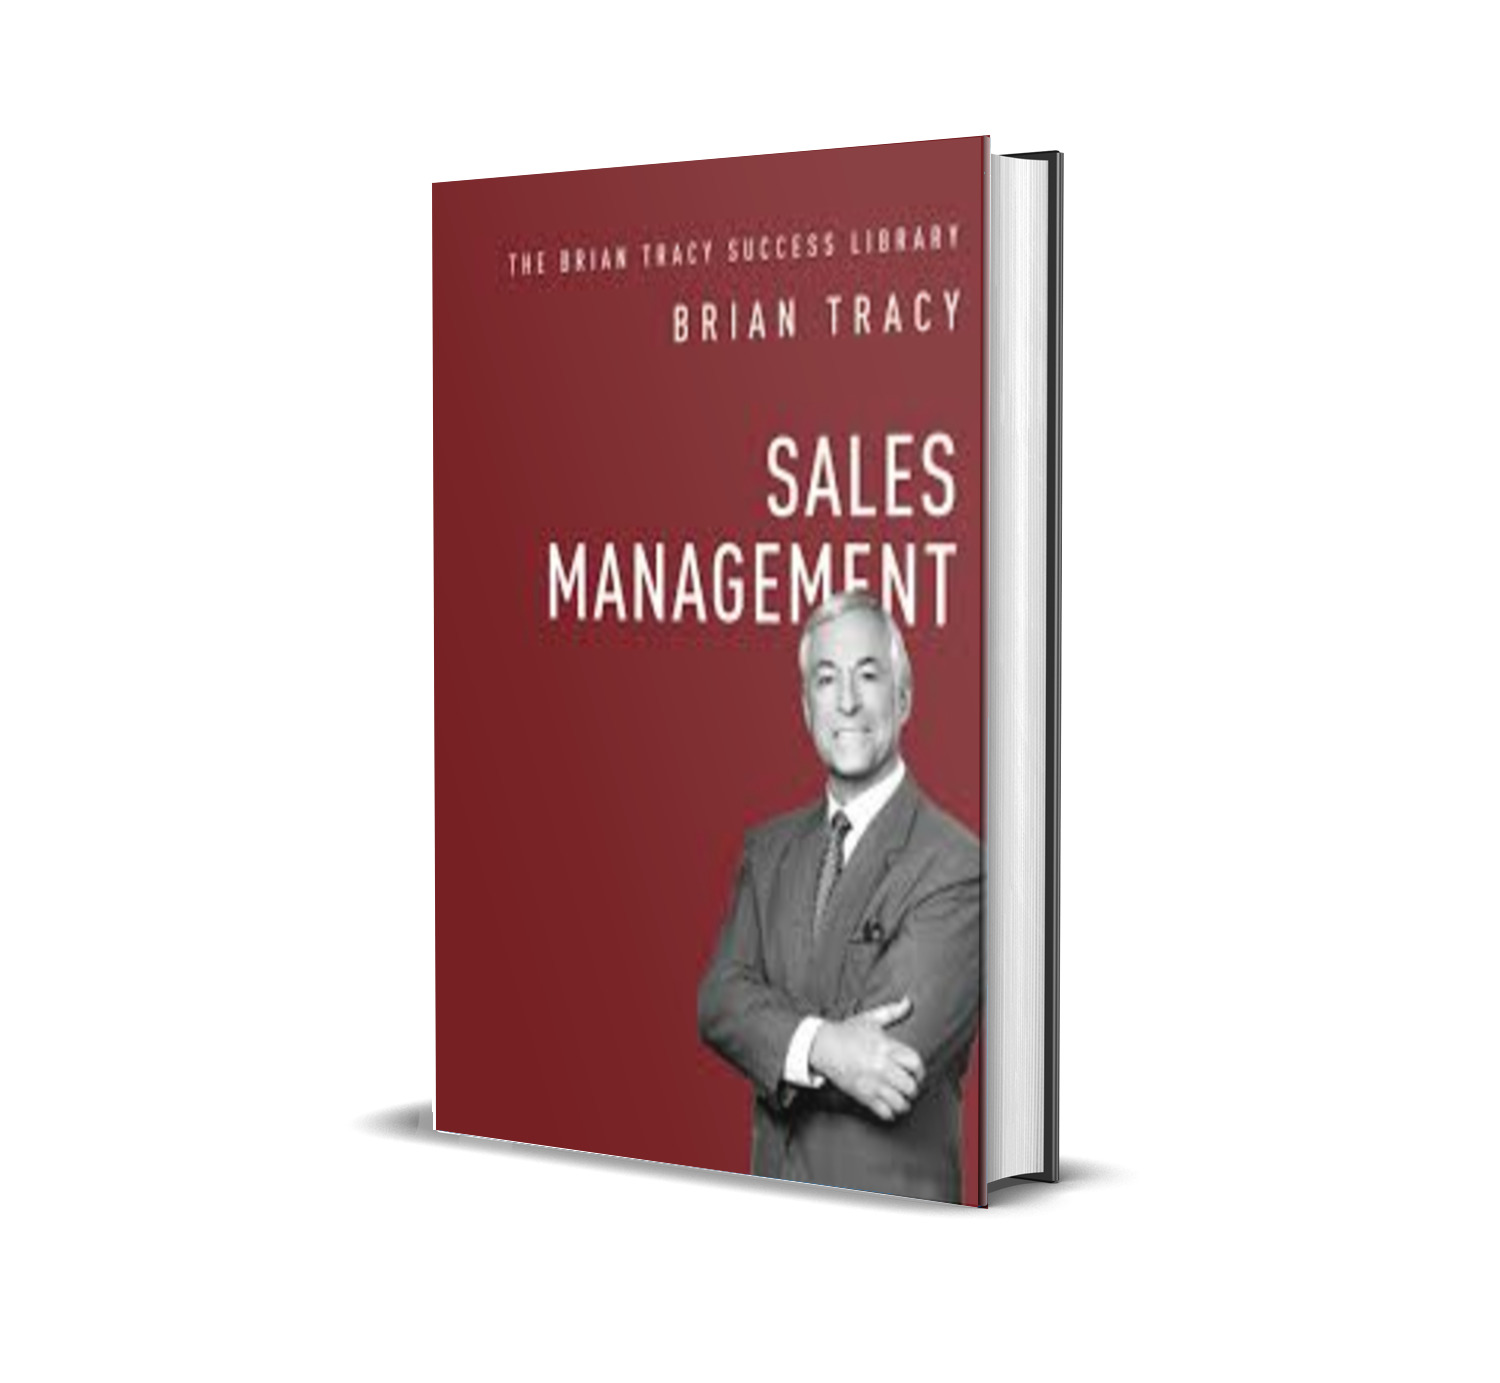 Sales Management - Brian Tracy